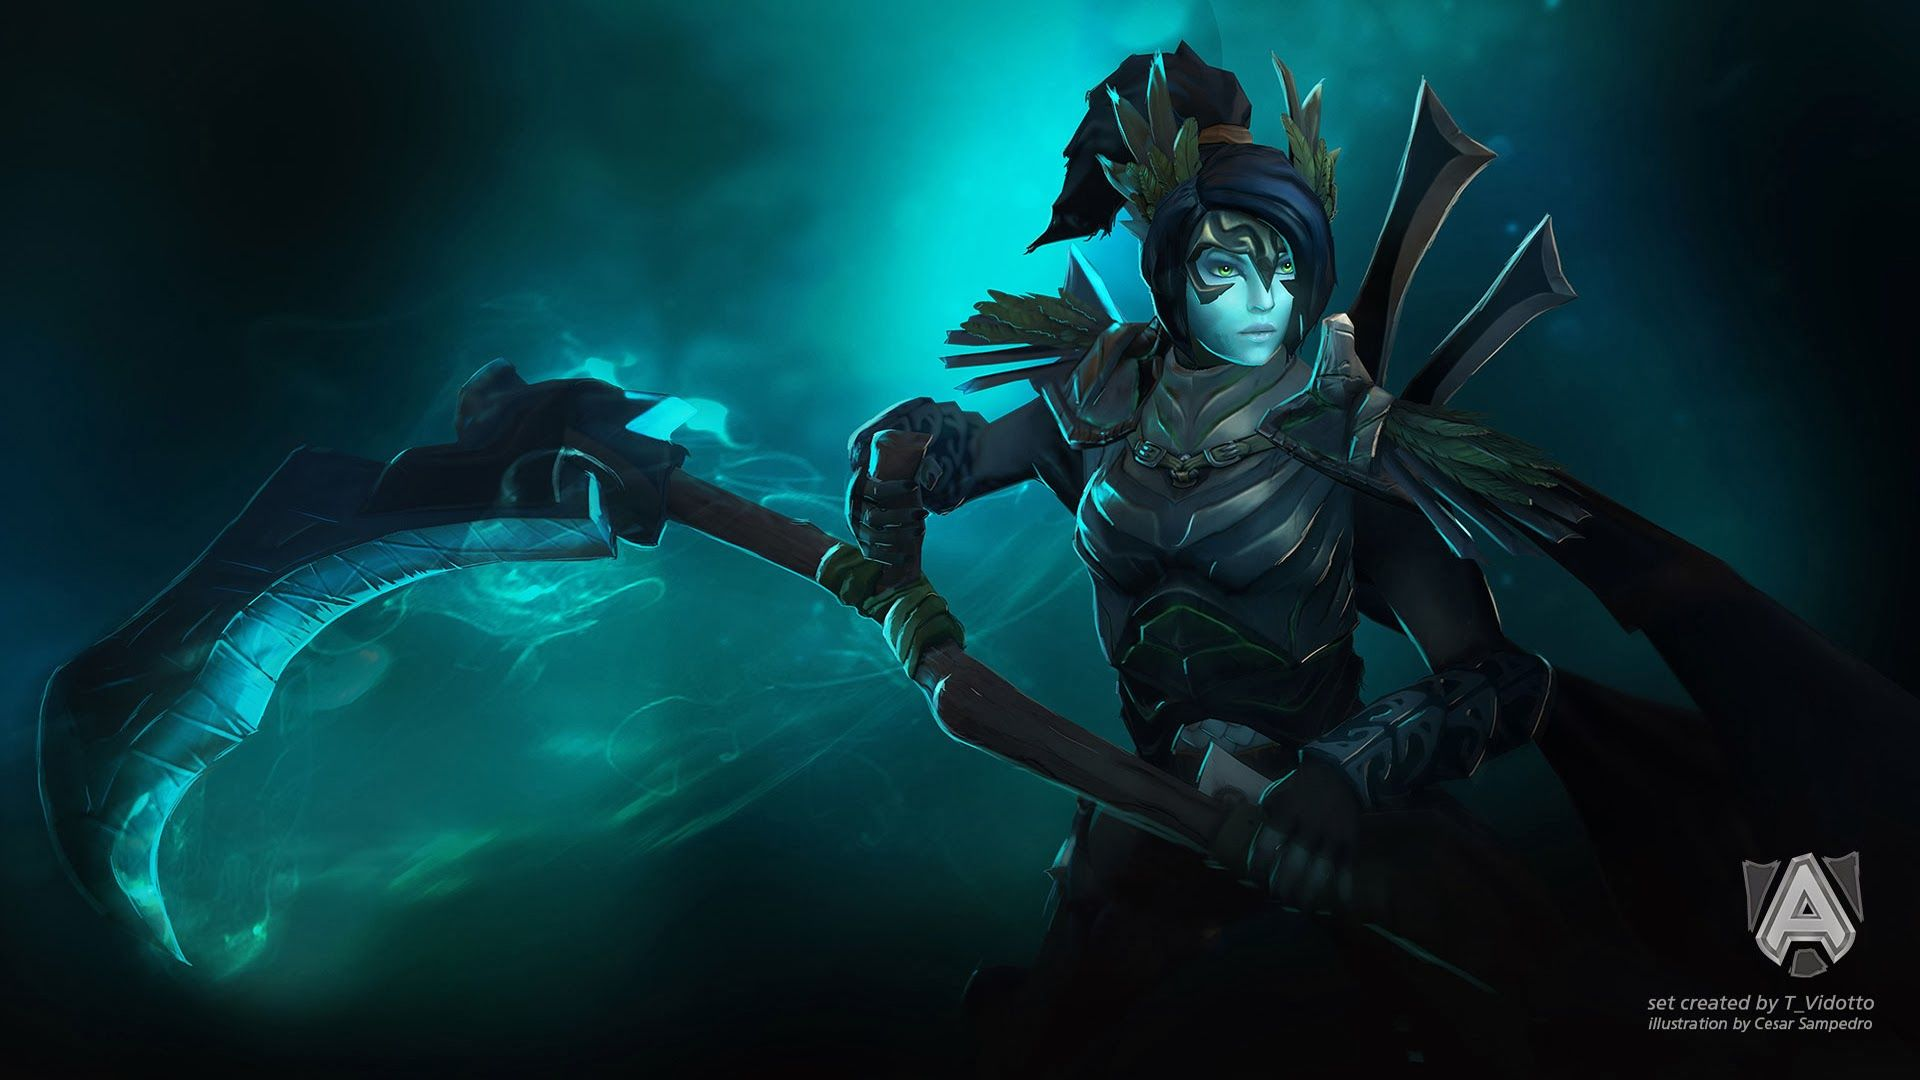 mortred dota 2 phantom assassin death scythe wallpaper hd